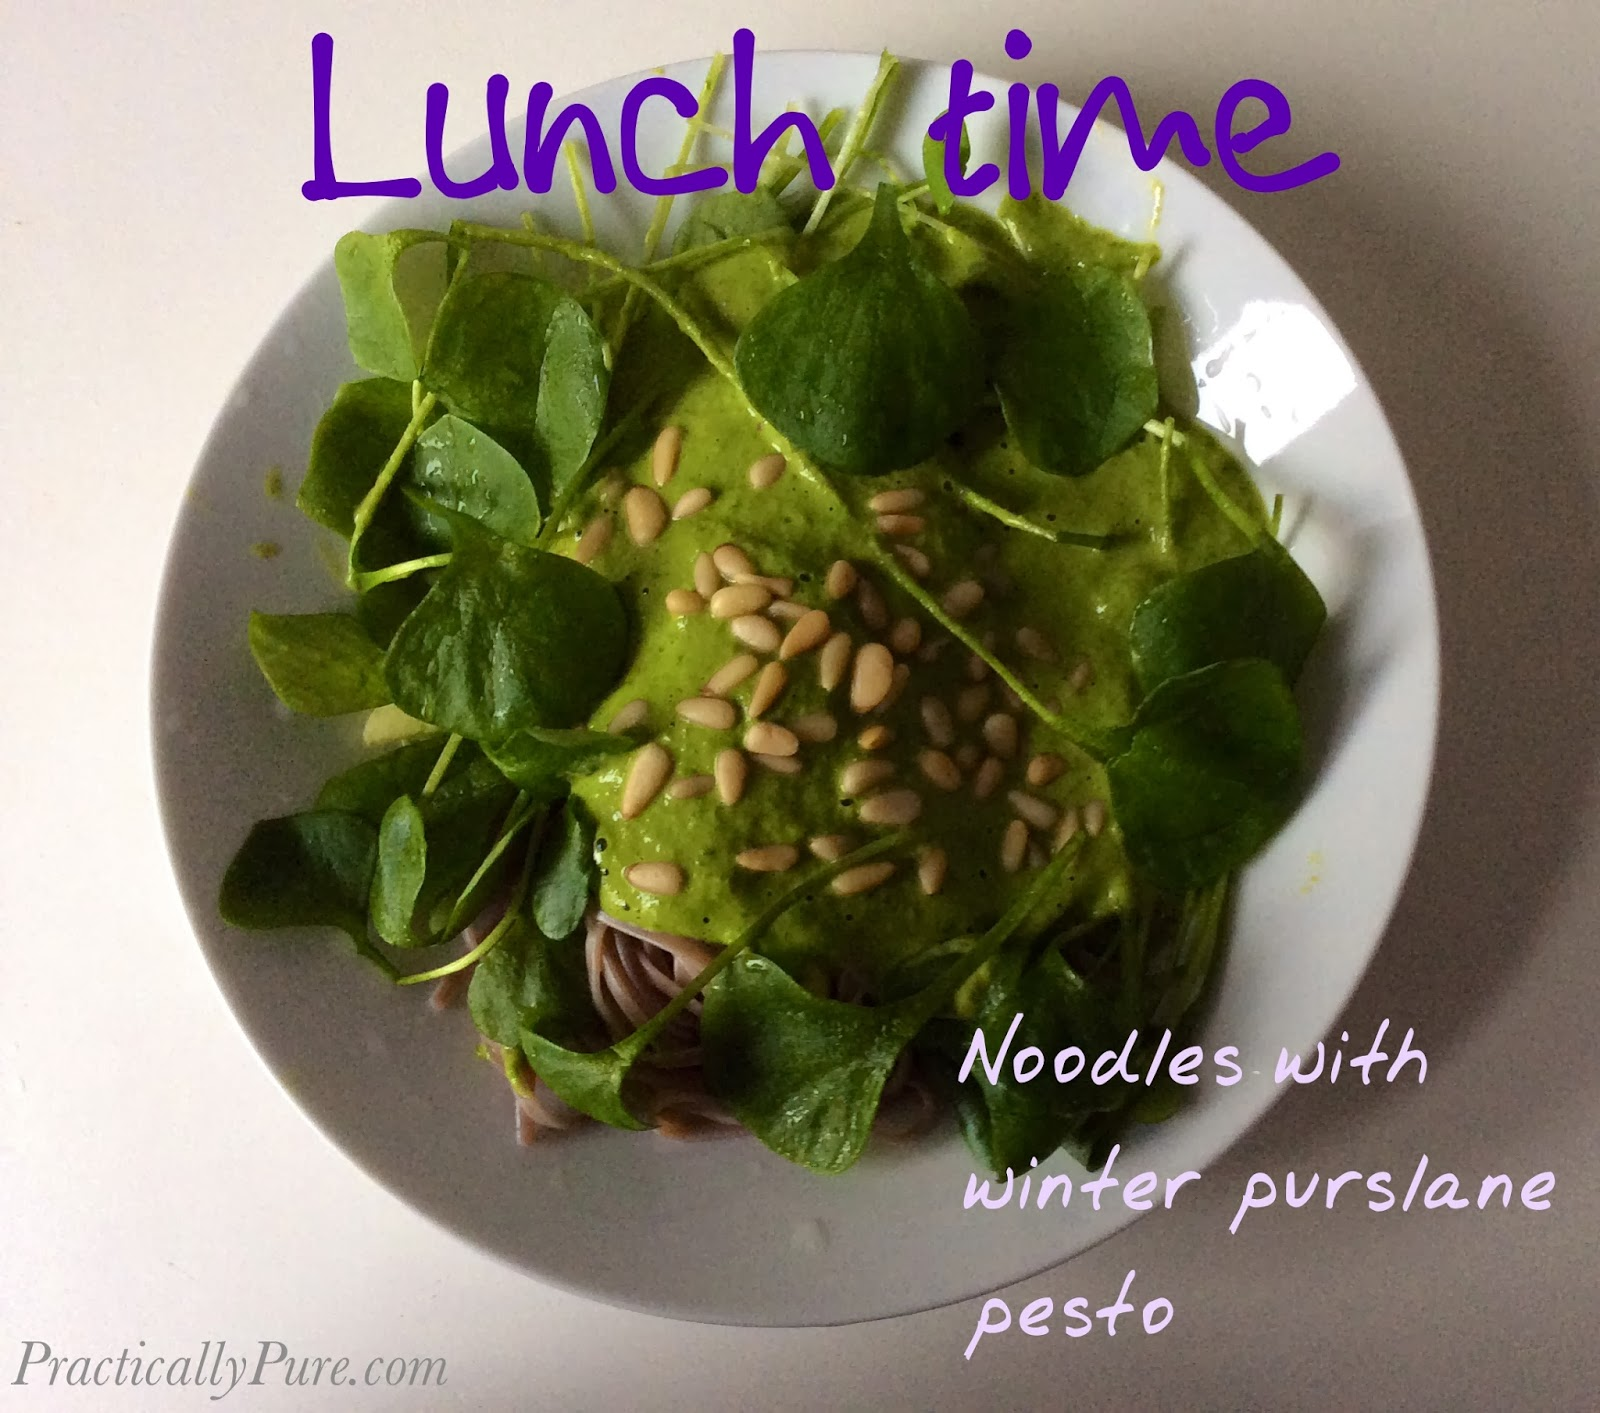 Healthy lunch: noodles with winter purslane pesto